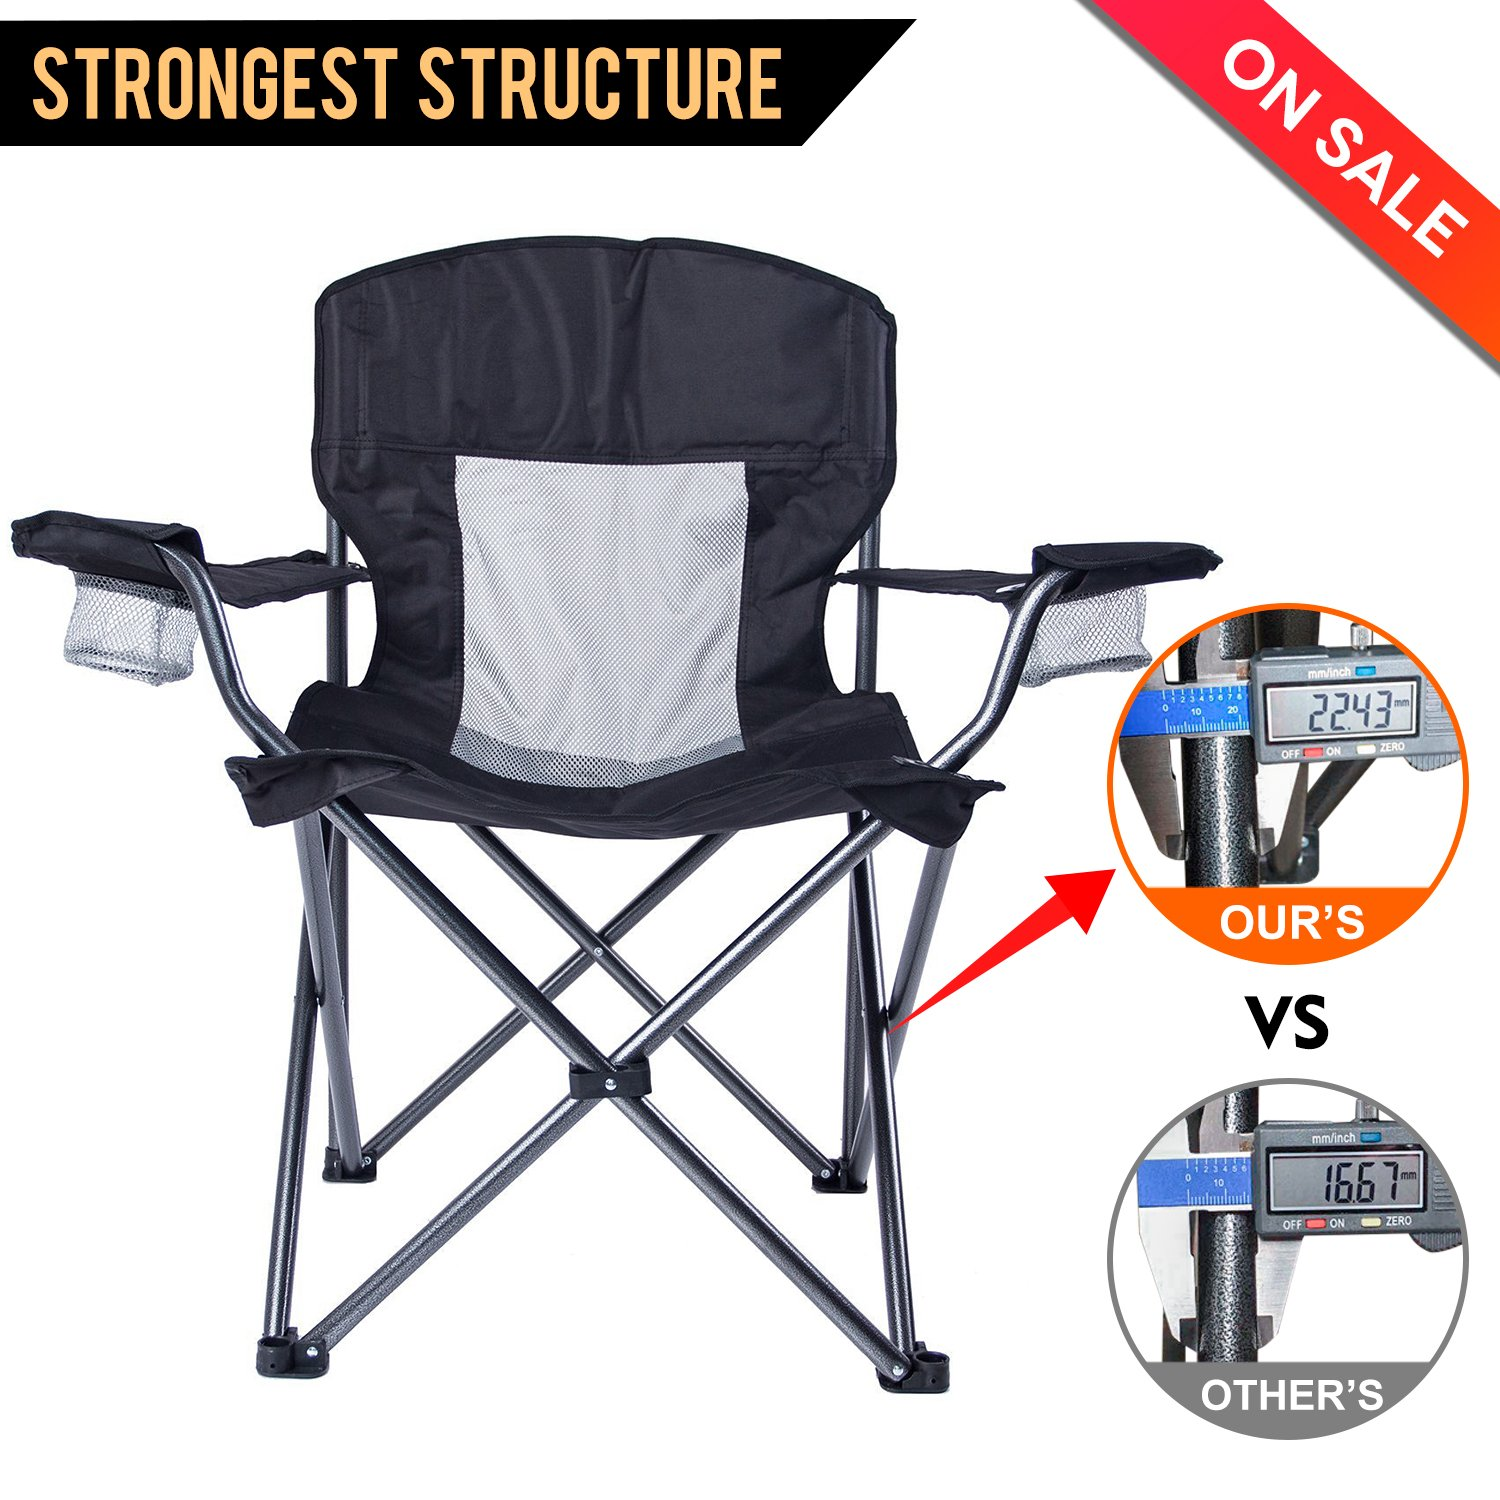 LCH折りたたみ椅子アウトドアキャンプQuad Chair Heavy Duty Deluxe with Two Cup Houlders andアームレストオーバーサイズハイバックサポート300lbsポータブルwith Carryバッグ B078KCP61C  ブラック